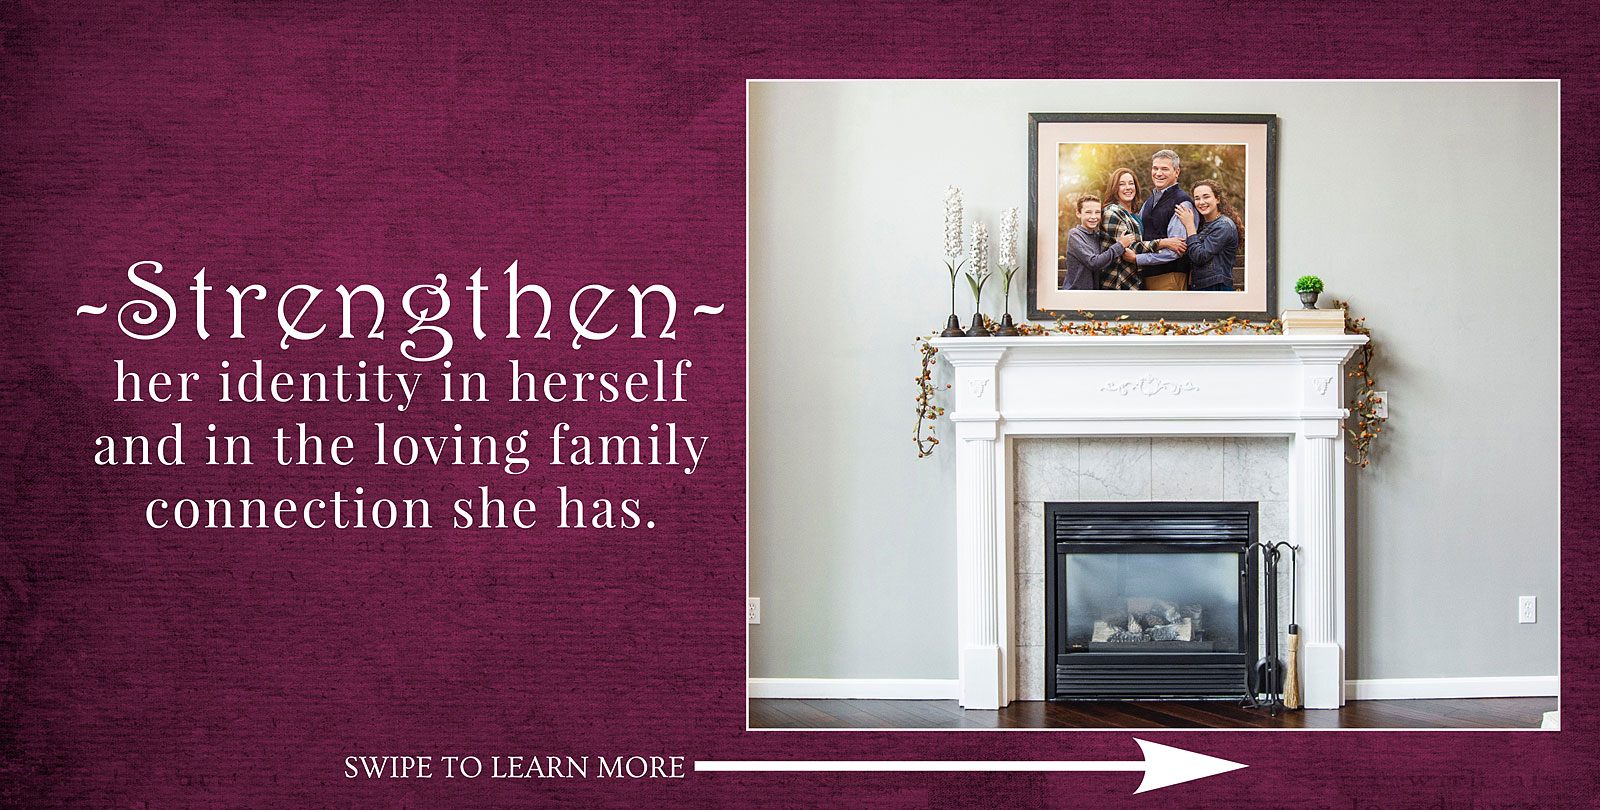 Louisville Family Portrait aframed above fireplace to help strengthen bonds